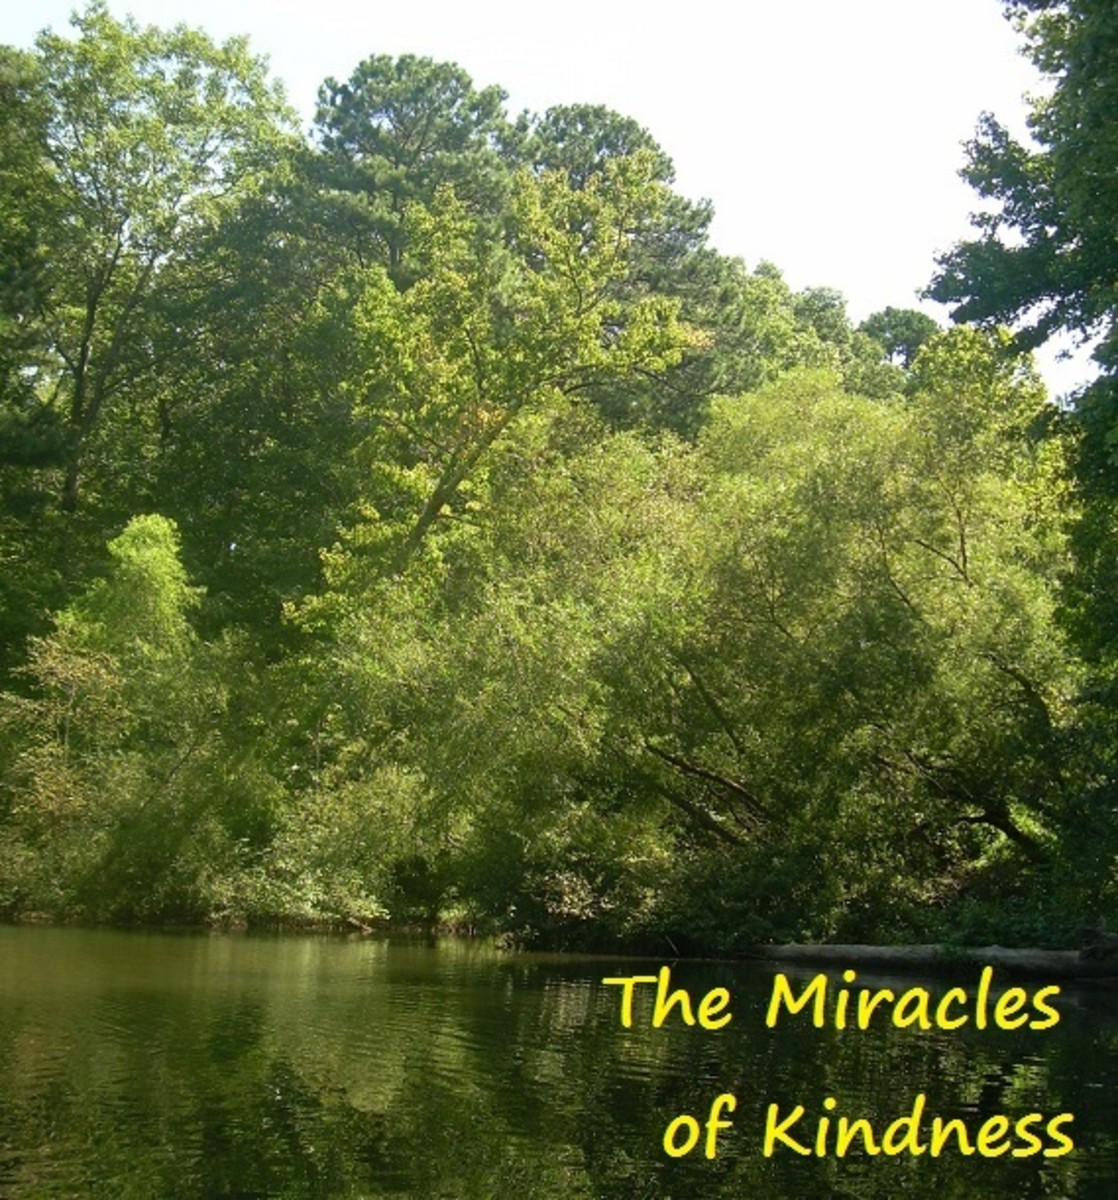 The Miracles of Kindness